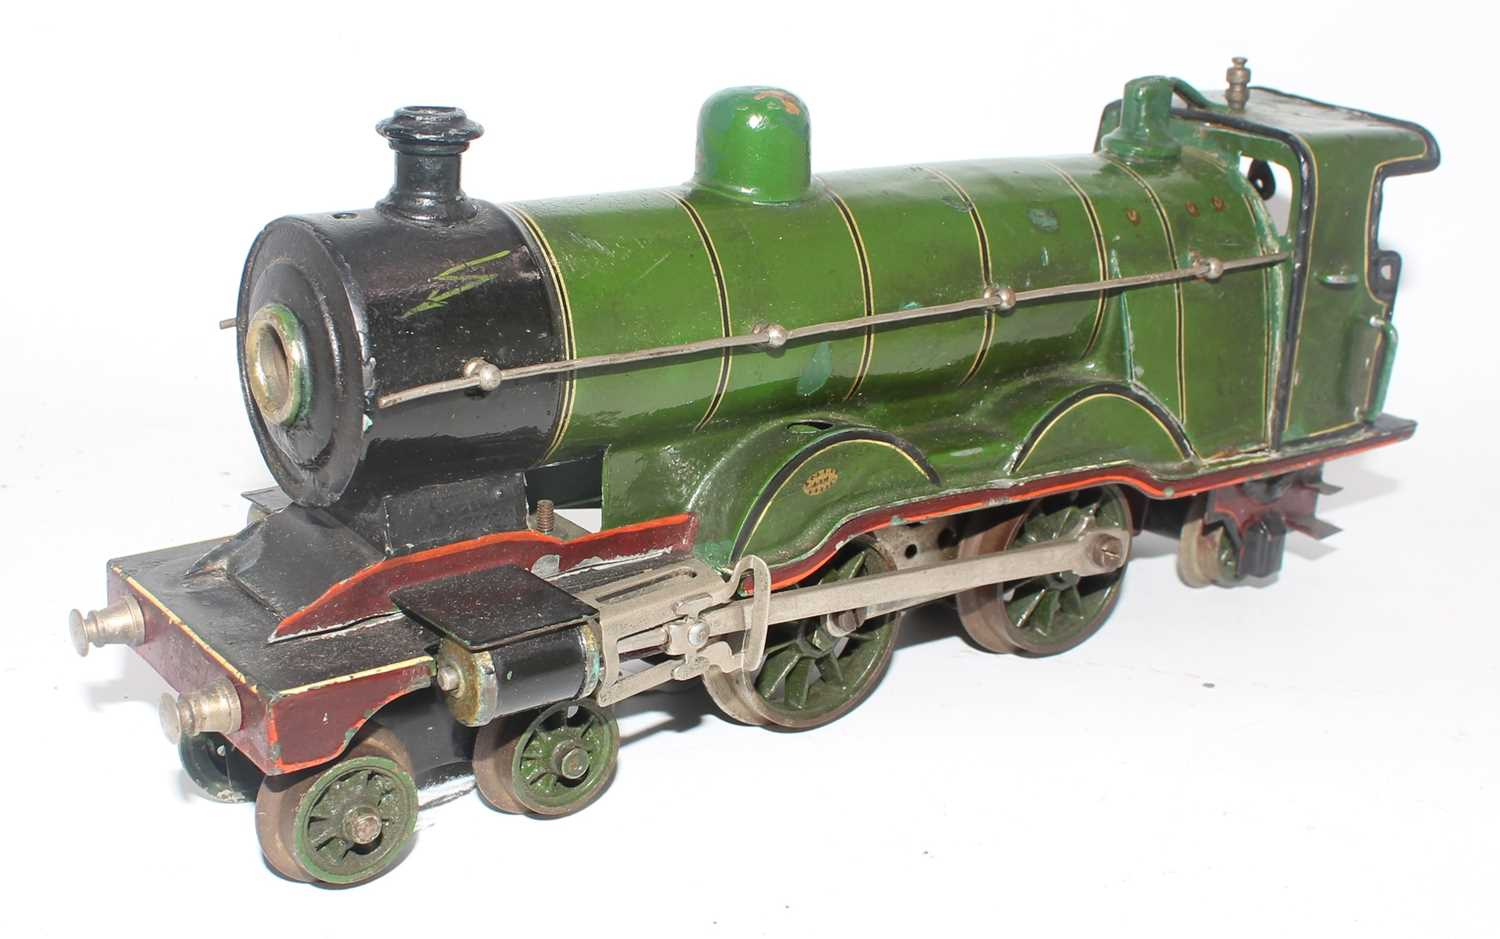 Marklin 4-4-2 loco, electric British Outline, heavily over painted and varnished, C.E.3120 on r/h